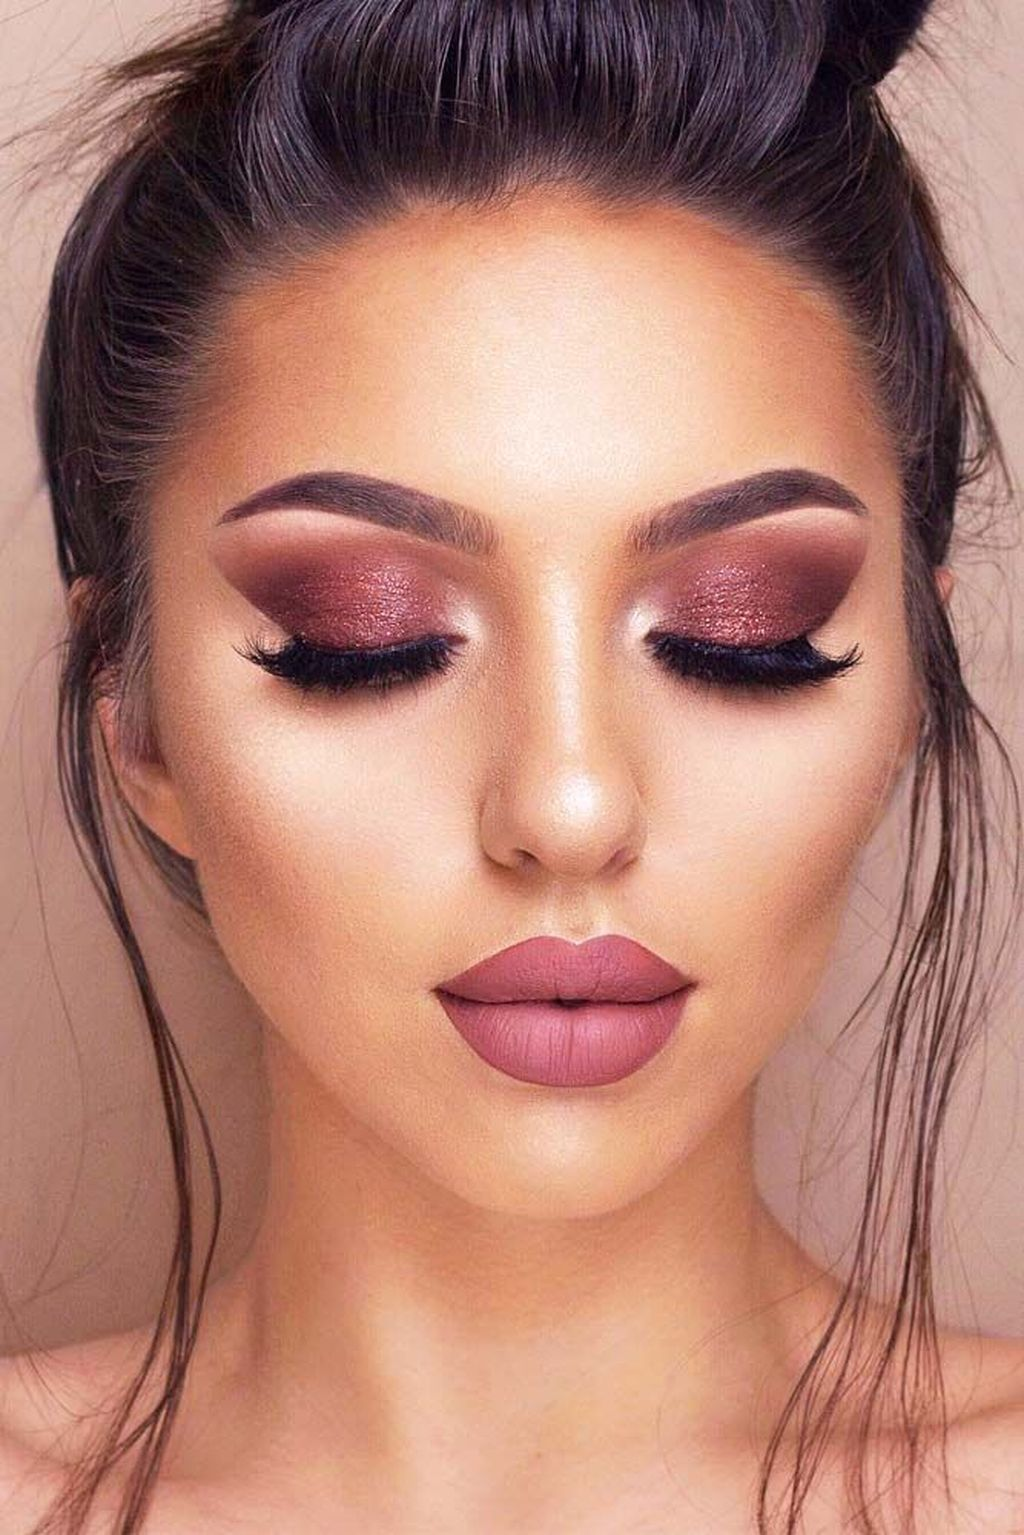 Cool 49 Fabulous Eyeliner Makeup Ideas For Women. More at